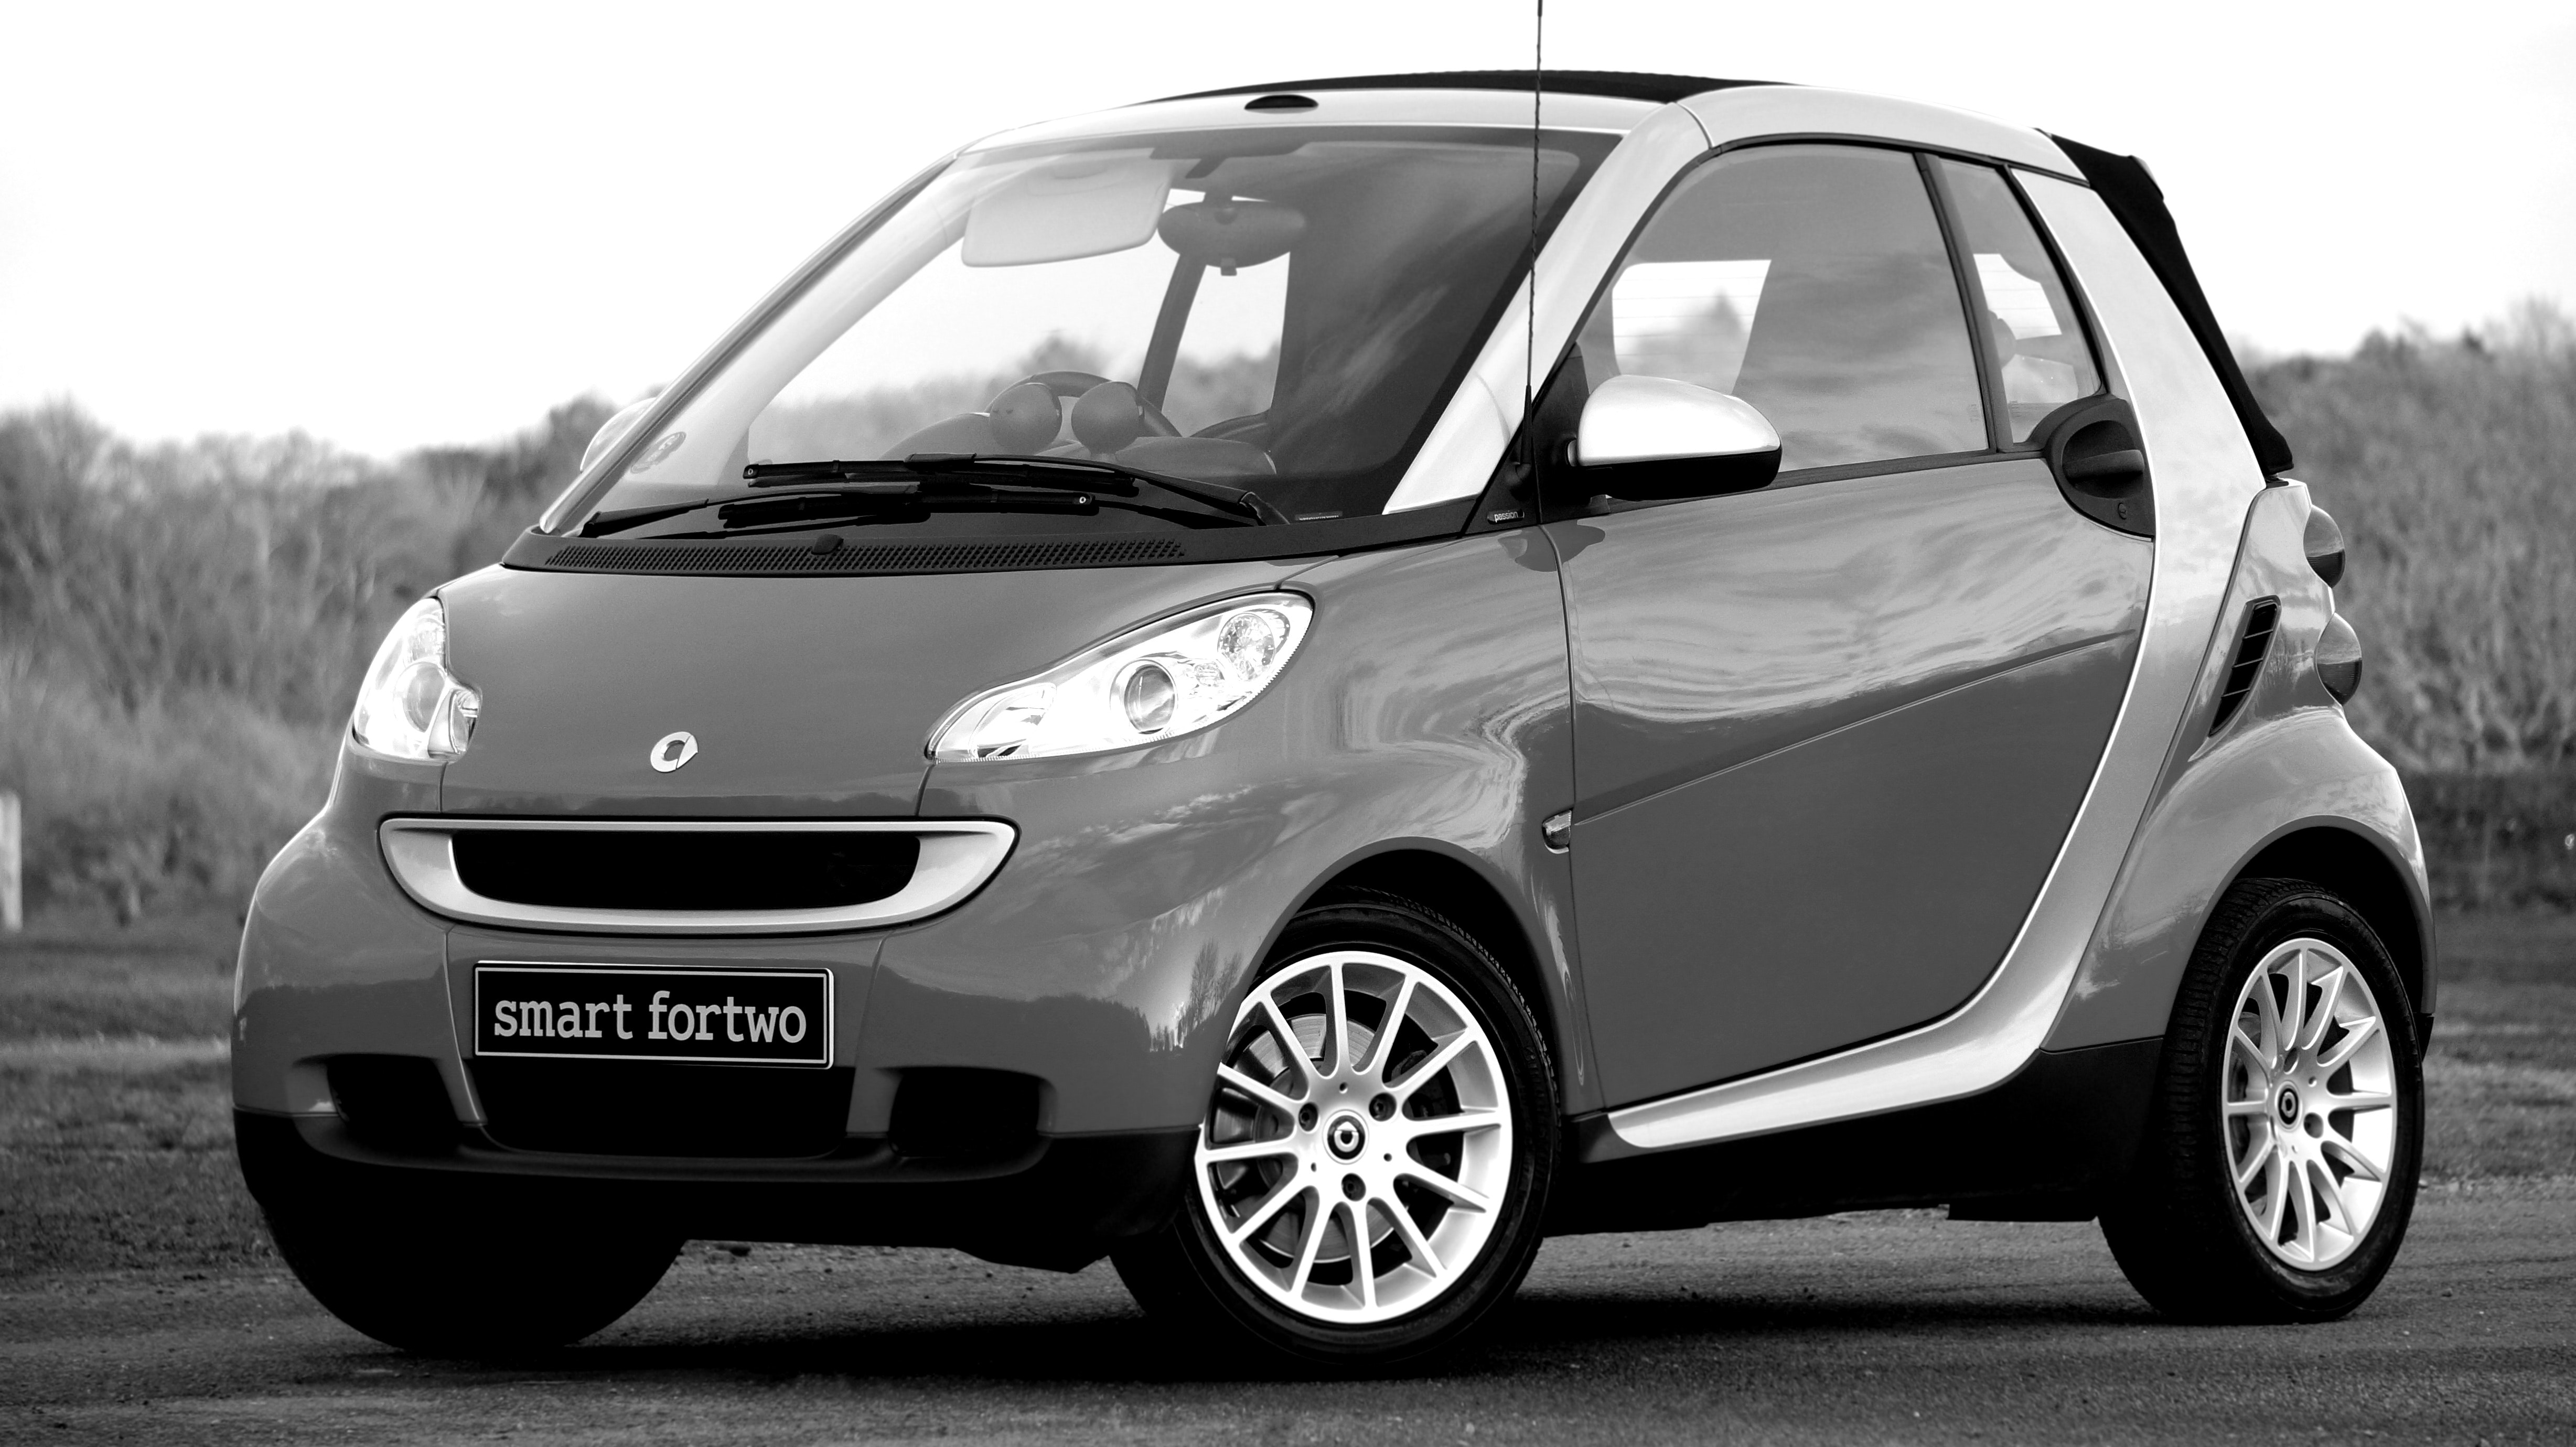 Grayscale photo of smart fortwo